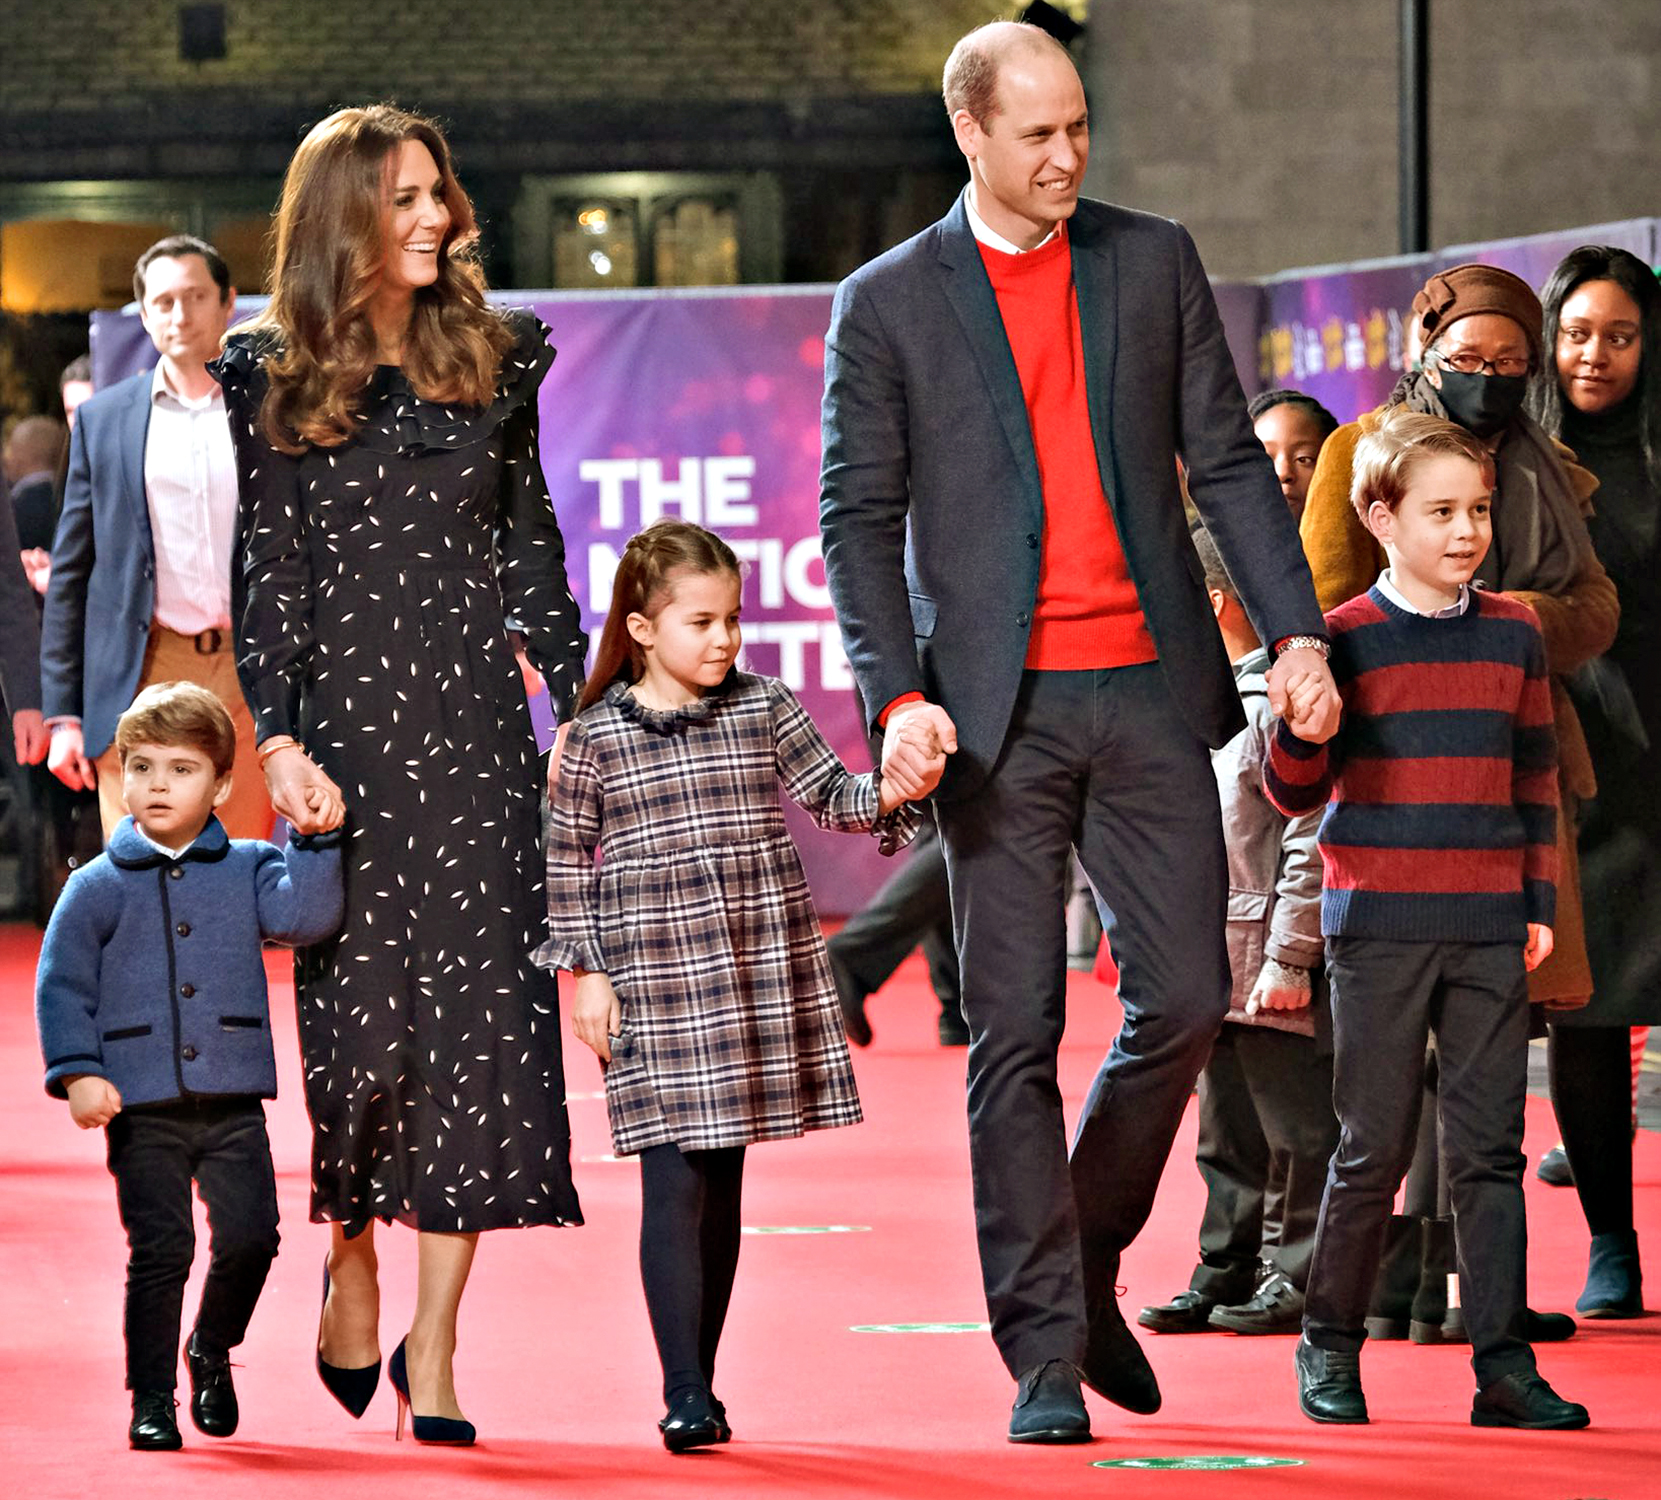 Kate Middleton, Prince William, family